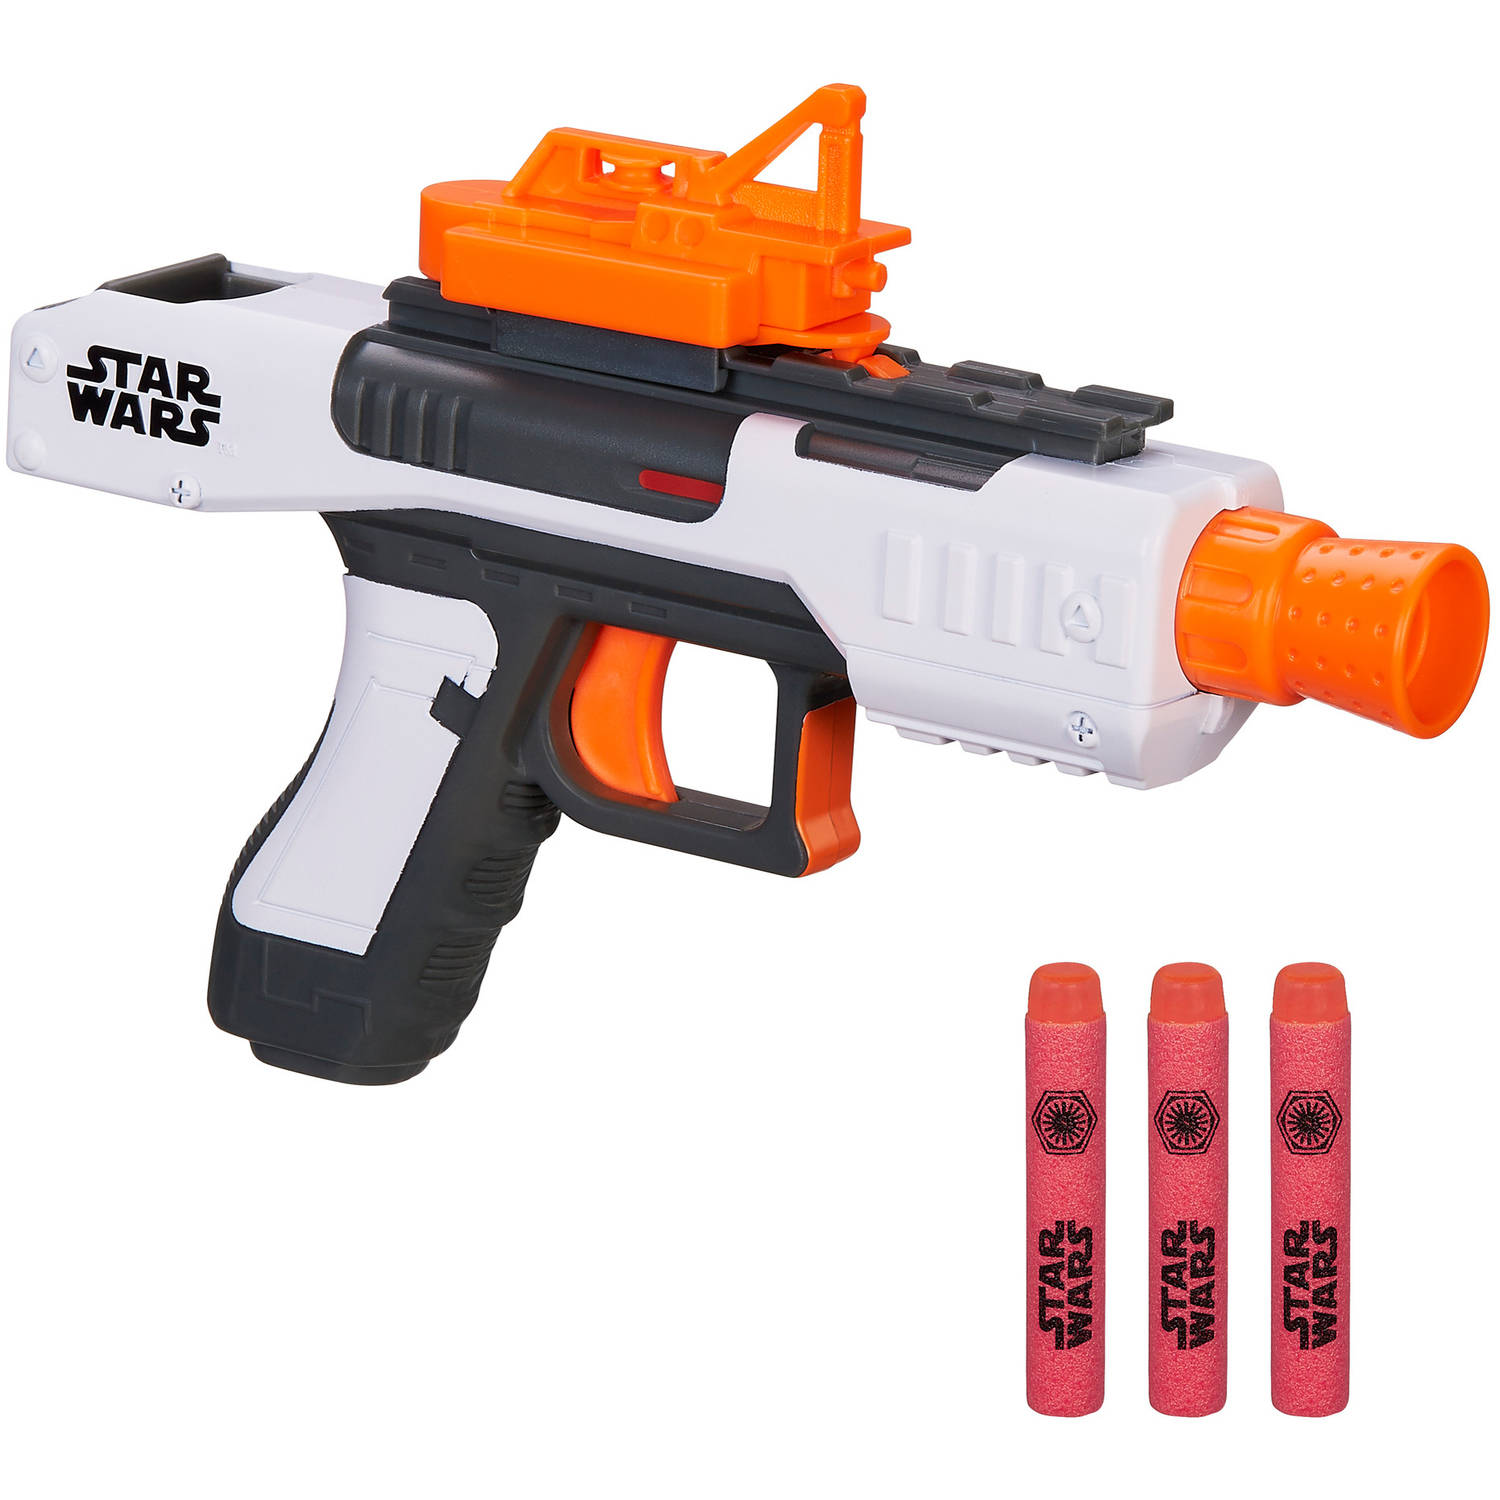 Star Wars Nerf Episode VII First Order Stormtrooper Blaster